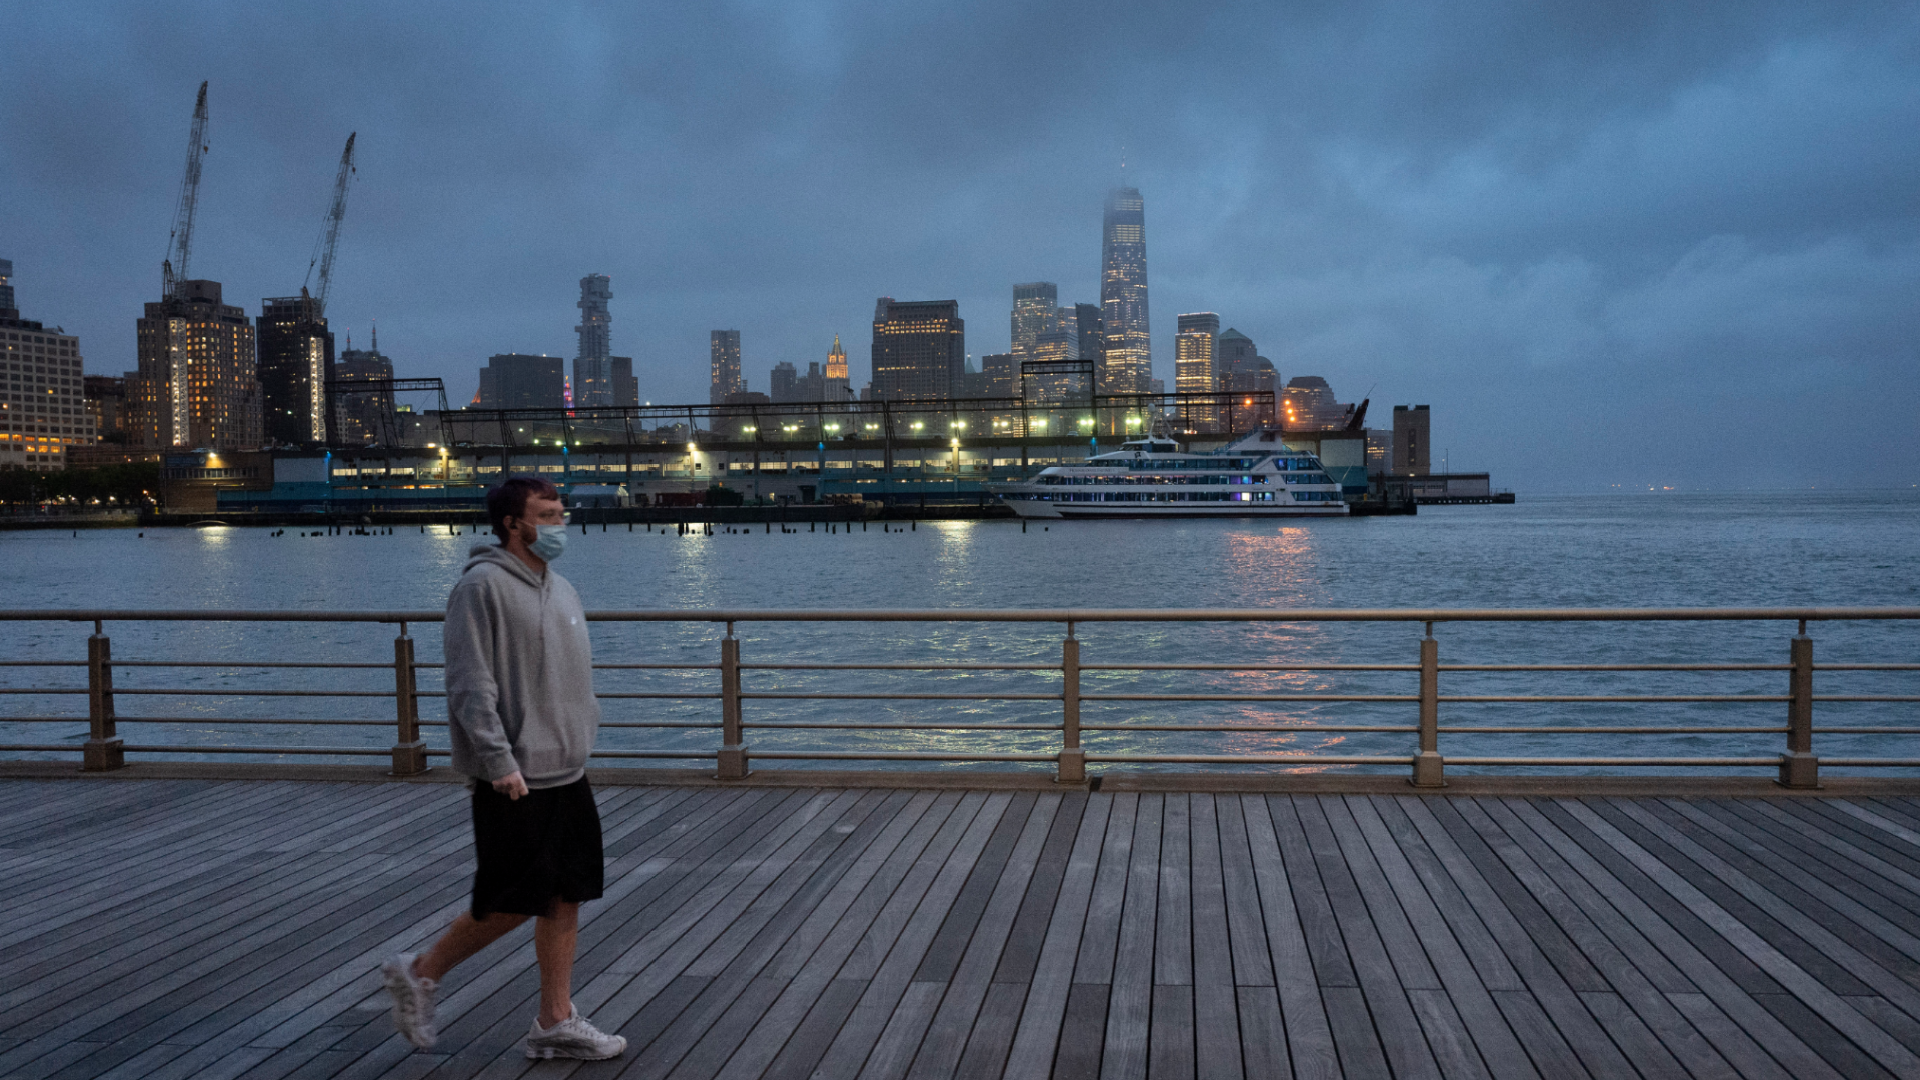 In this April 30, 2020, file photo, a man wears a face mask as he walks on Pier 45 in Hudson River Park in New York. (AP Photo/Mark Lennihan, File)